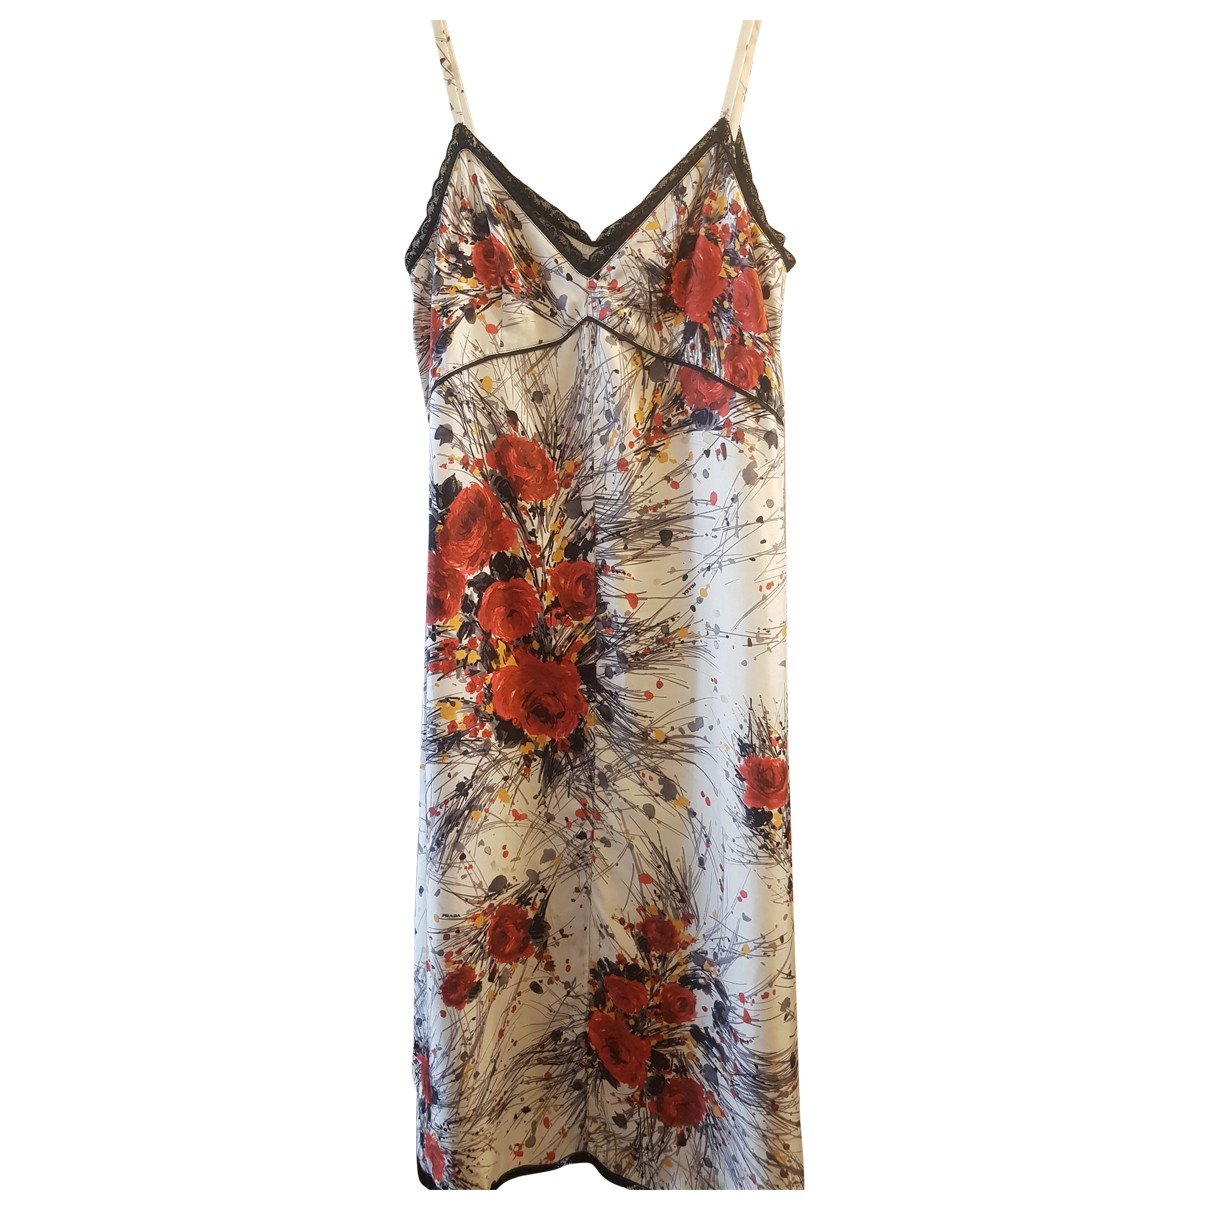 Prada N Multicolour Silk dress for Women 38 IT